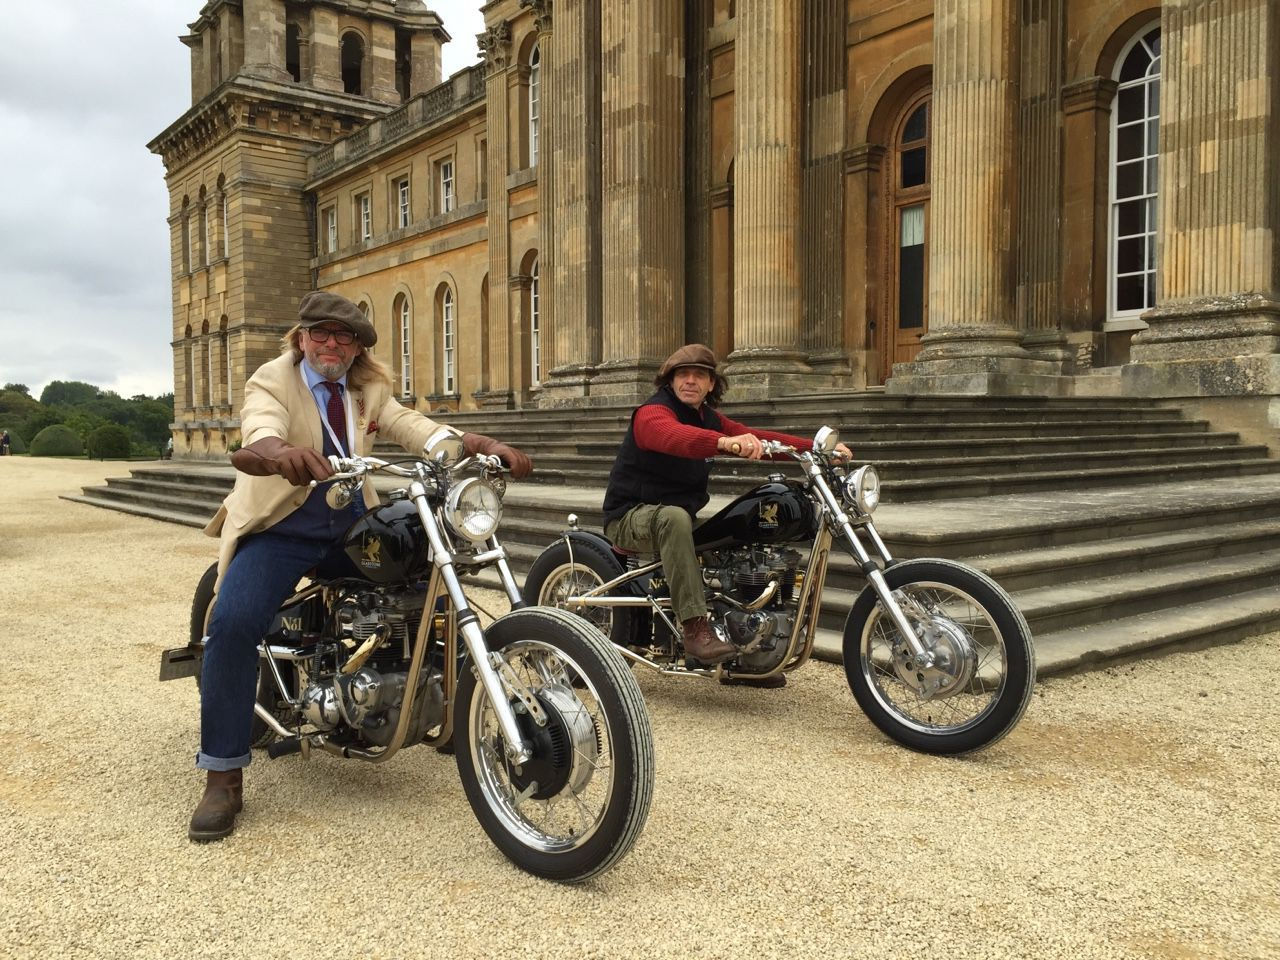 10 Fast Facts About Henry Cole And His Motorcycle TV Show